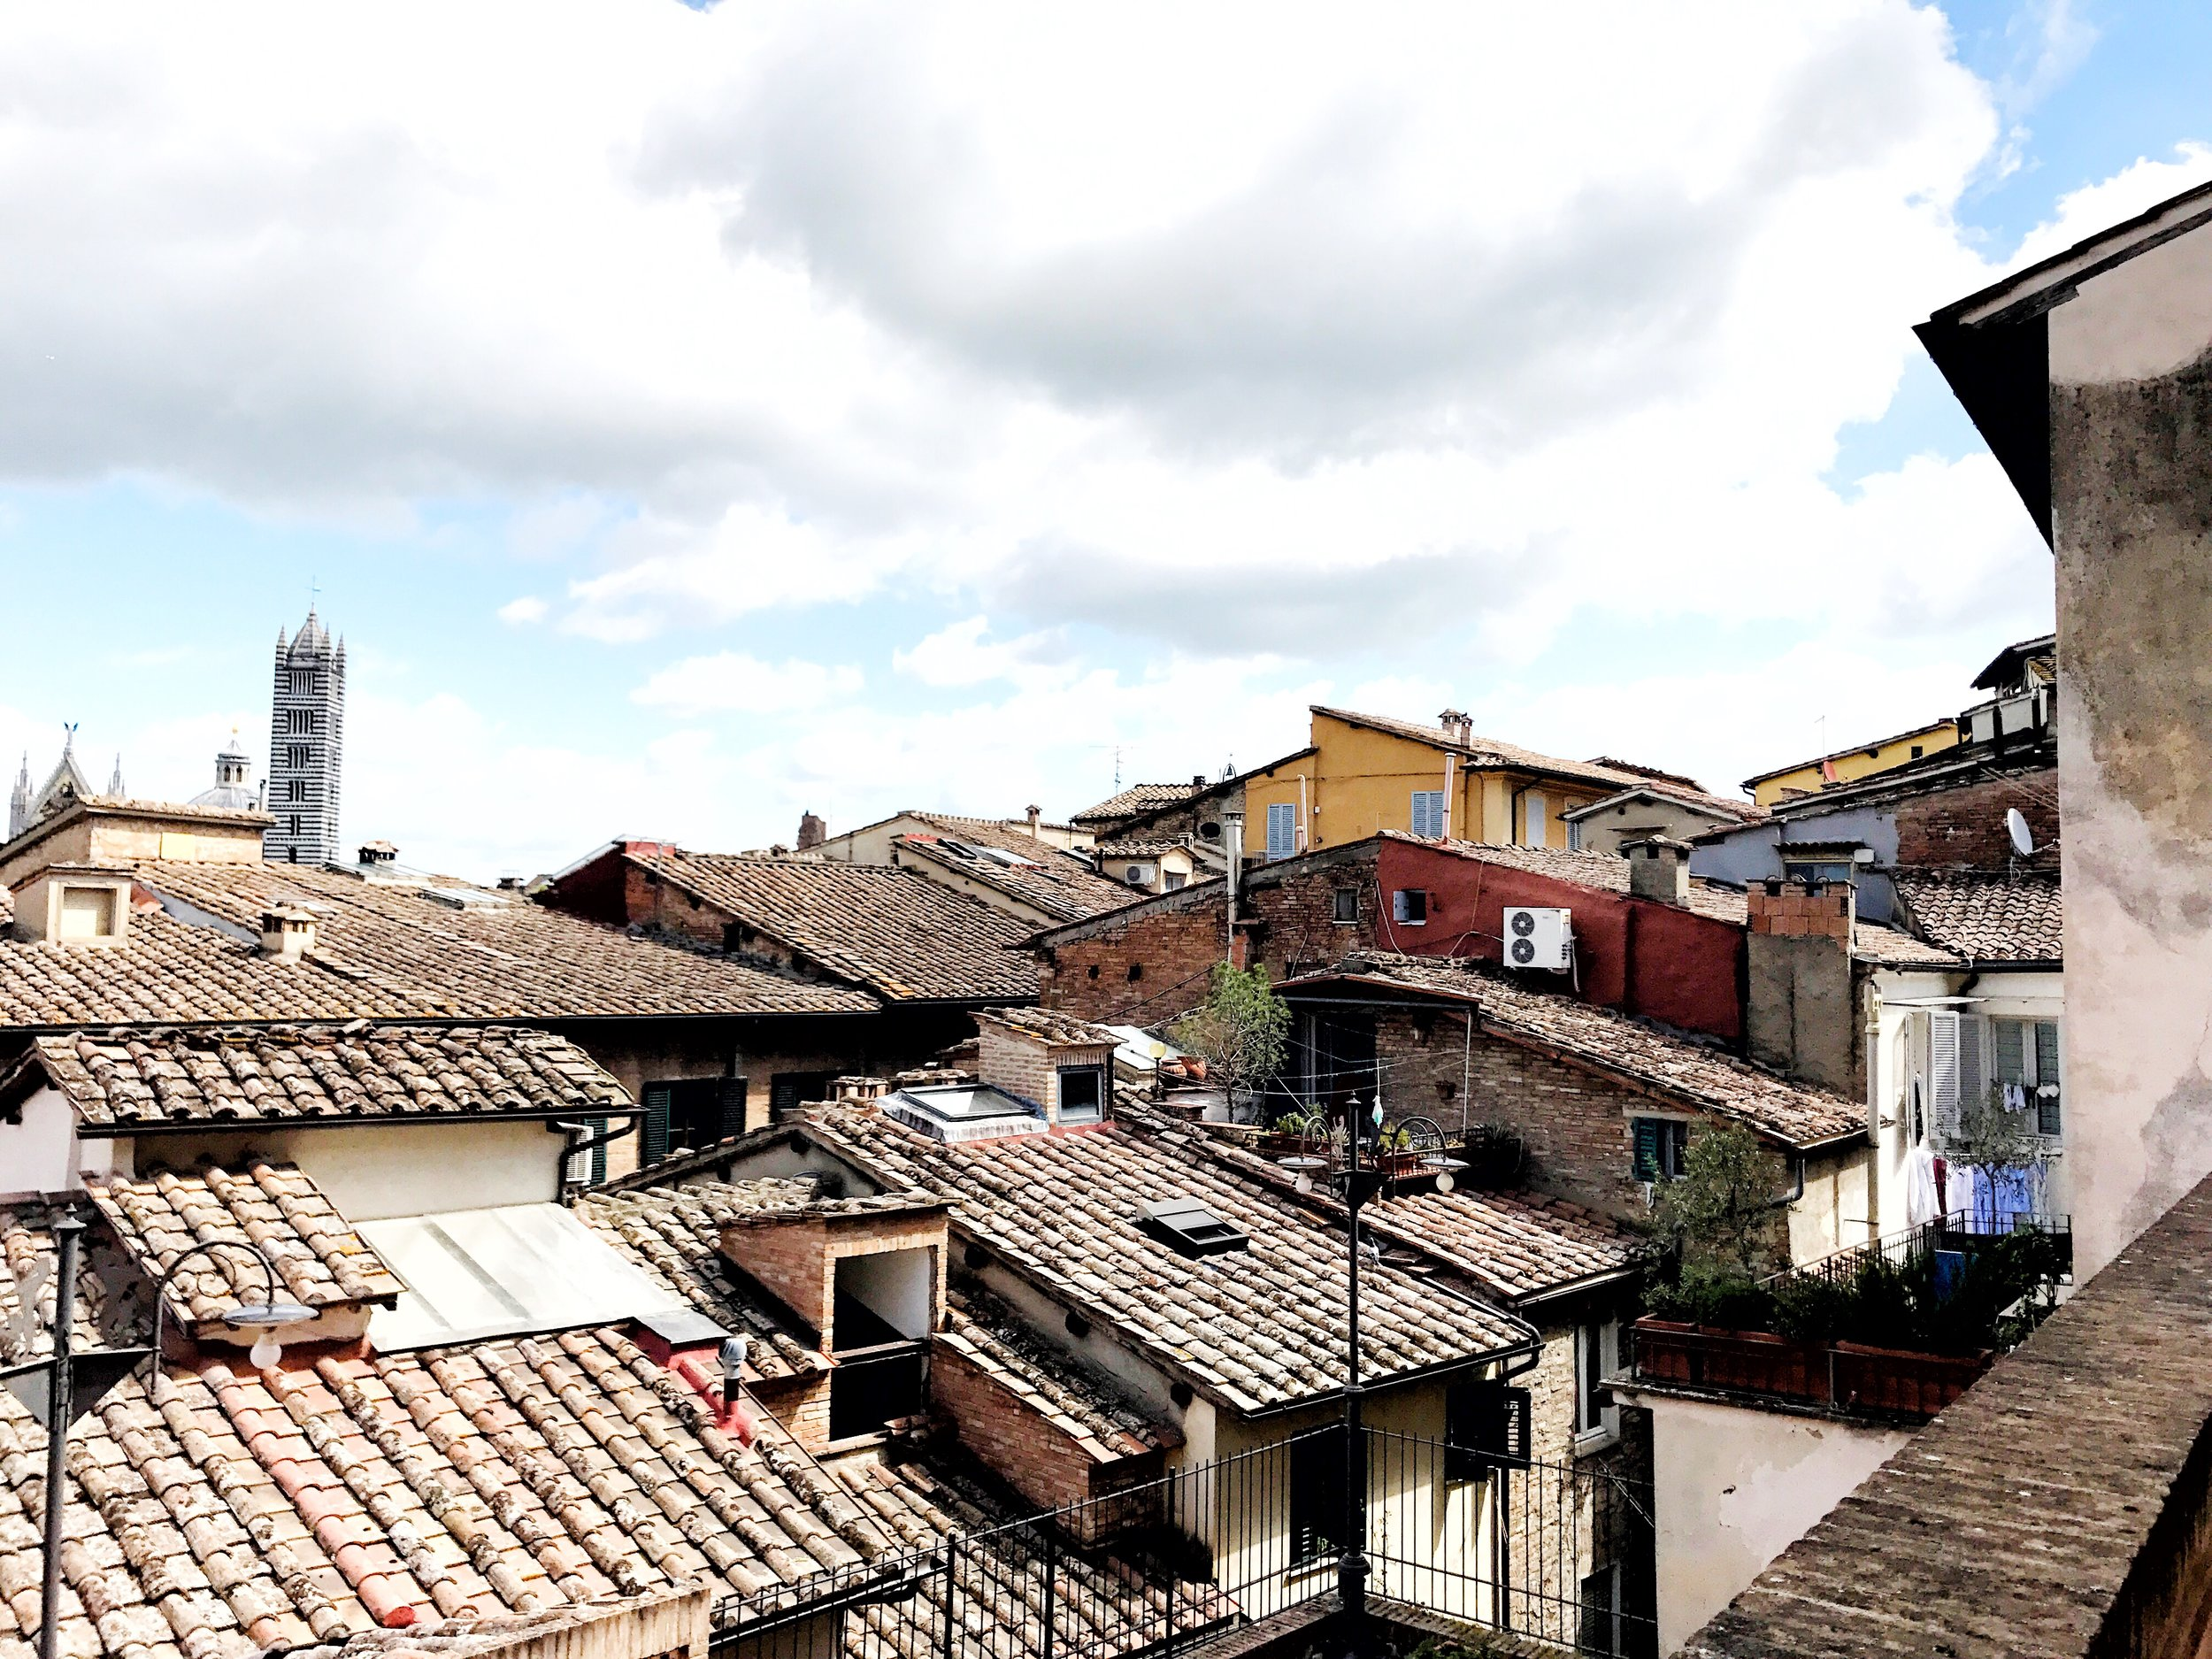 Rooftops of Siena, Italy